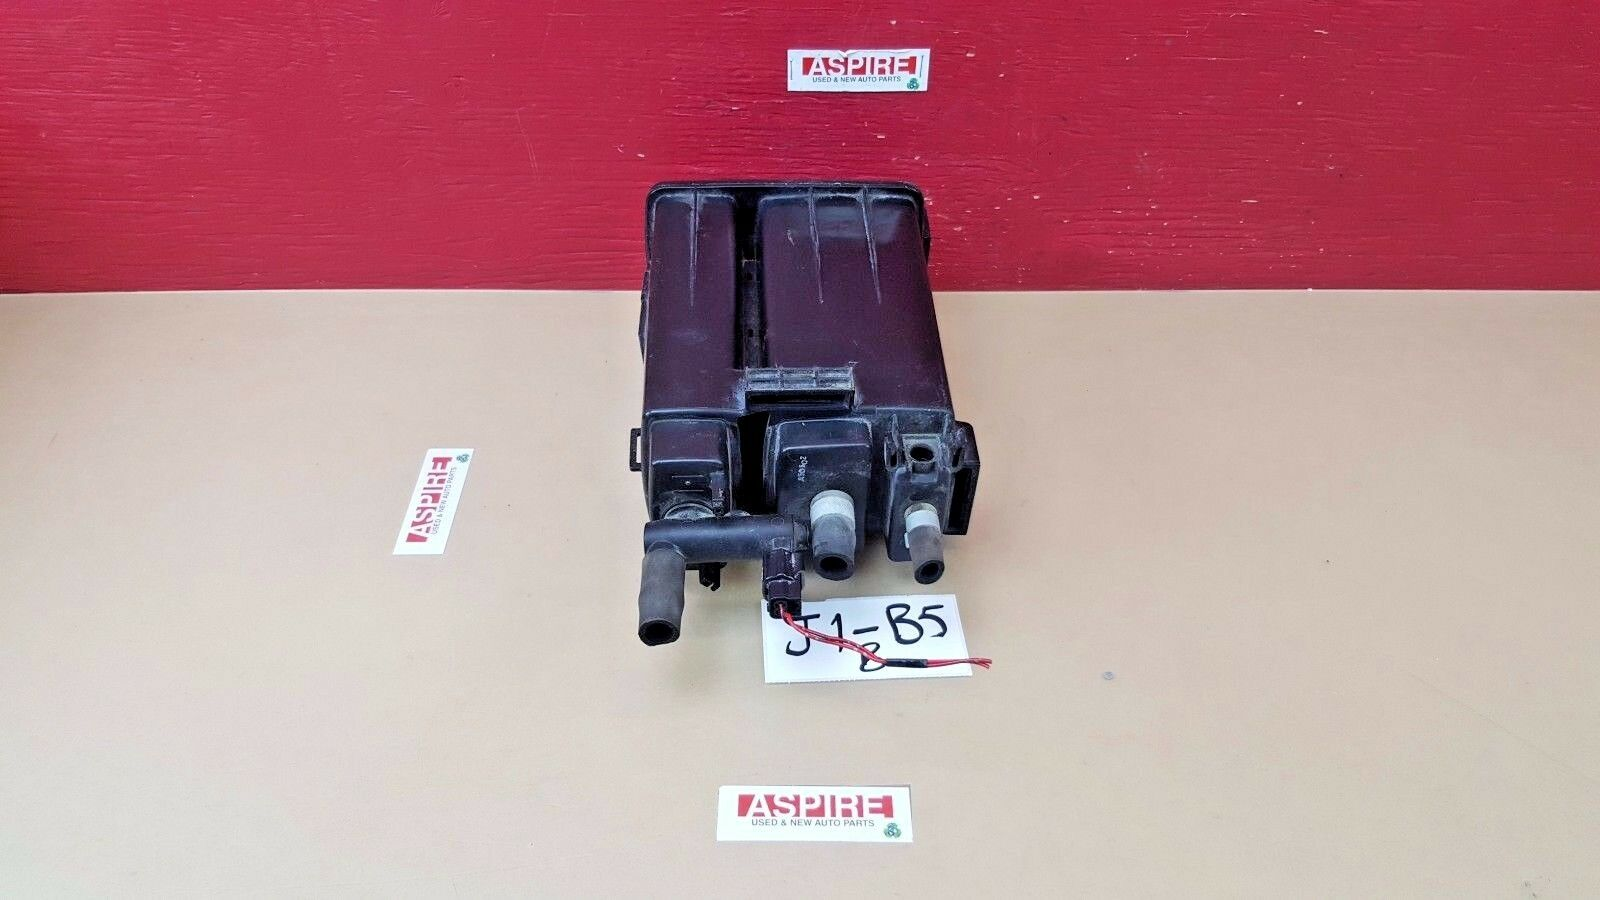 Used Nissan Fuel Filters For Sale 1999 Altima Filter 2003 2007 Murano Vapor Charcoal Canister14950ca000 Oem